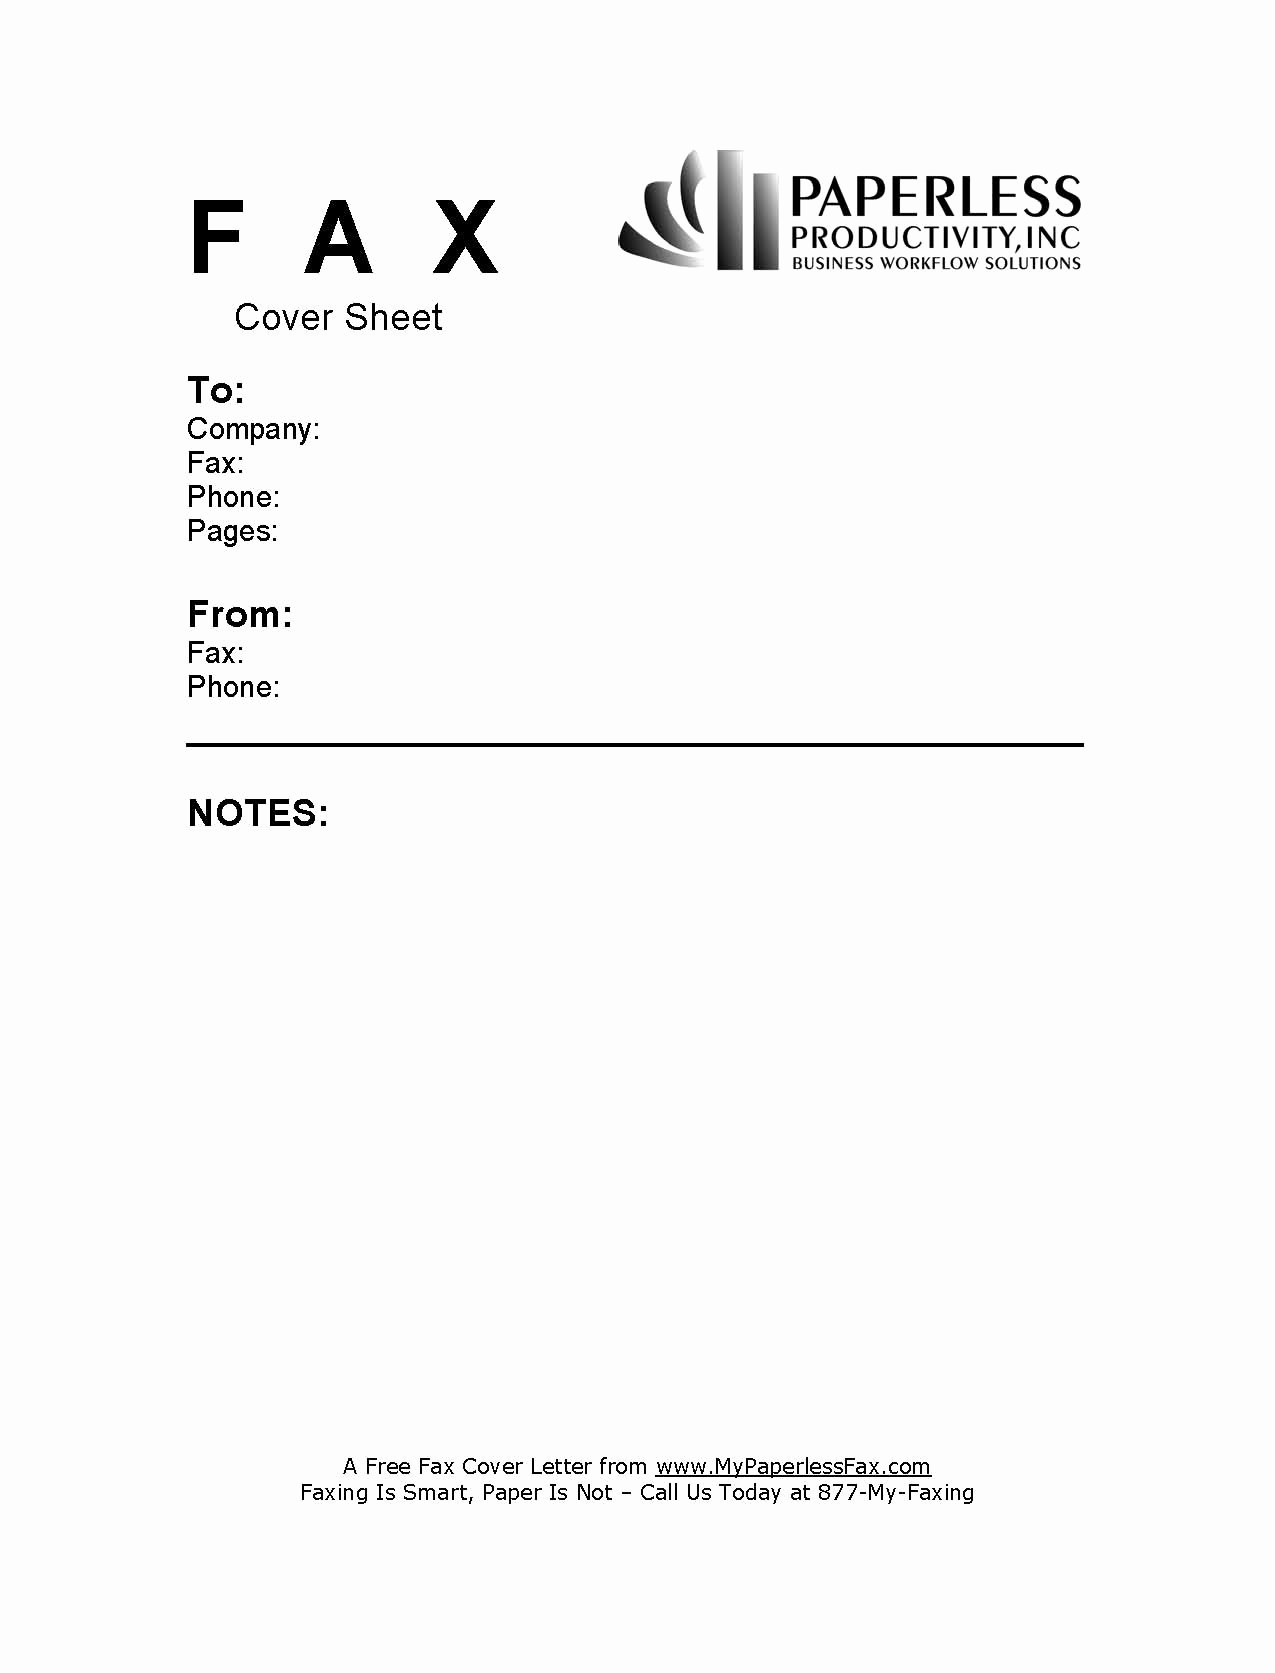 Examples Of Fax Cover Sheets Elegant Sample Fax Cover Page